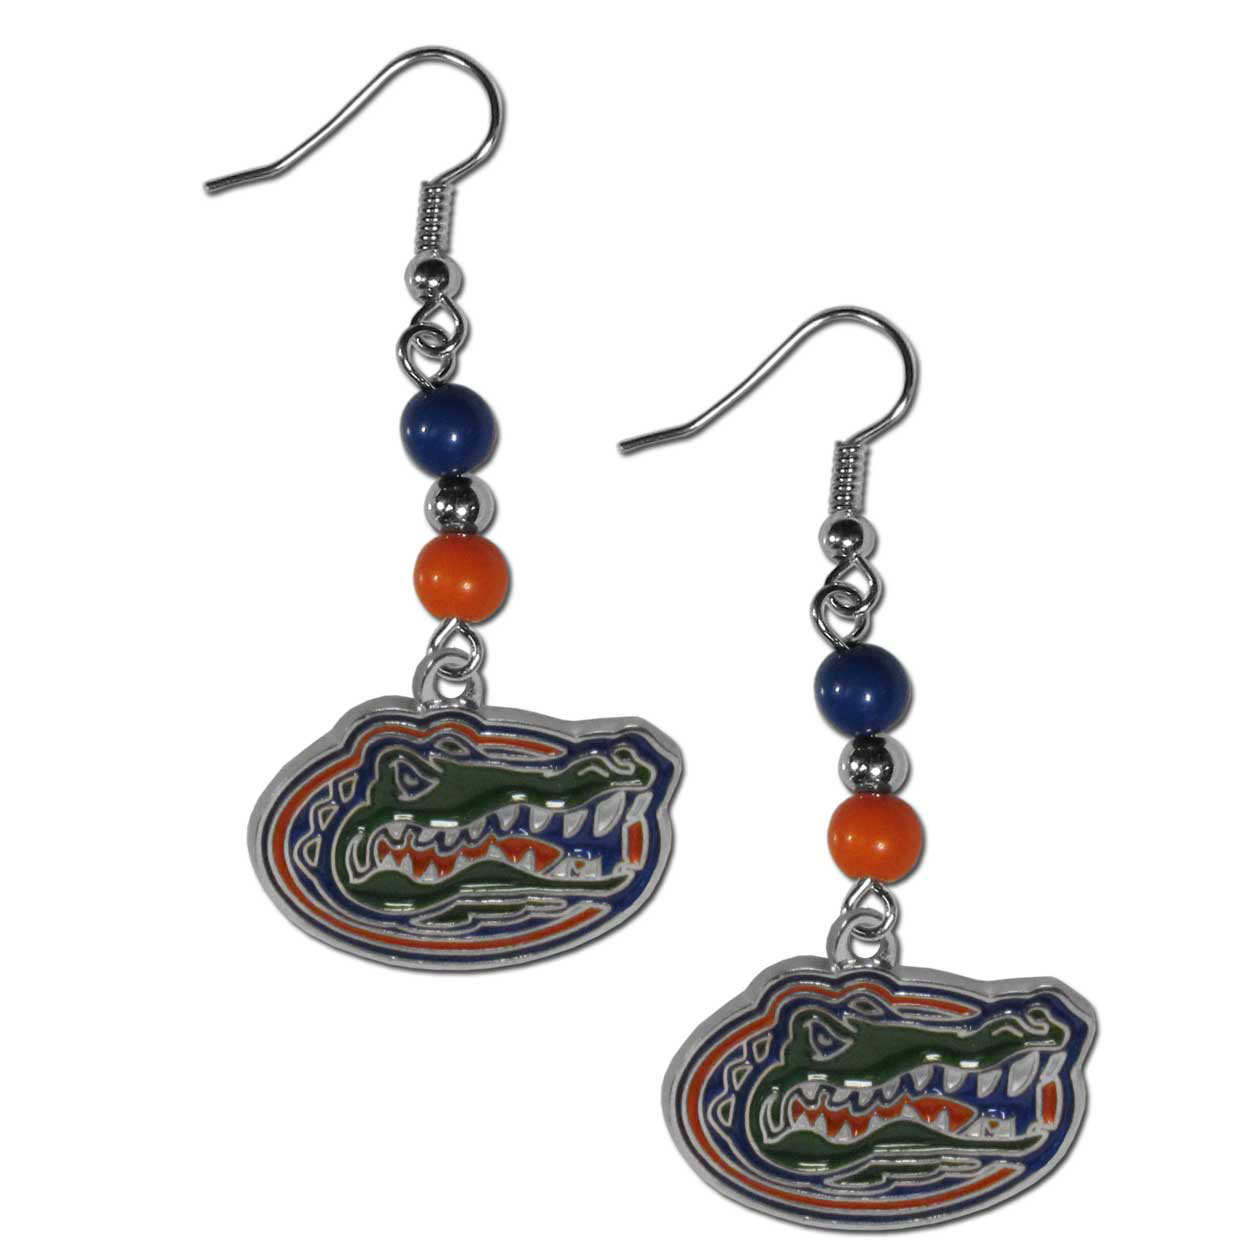 Florida Gators Fan Bead Dangle Earrings - Love your team, show it off with our Florida Gators bead dangle earrings! These super cute earrings hang approximately 2 inches and features 2 team colored beads and a high polish team charm. A must have for game day!